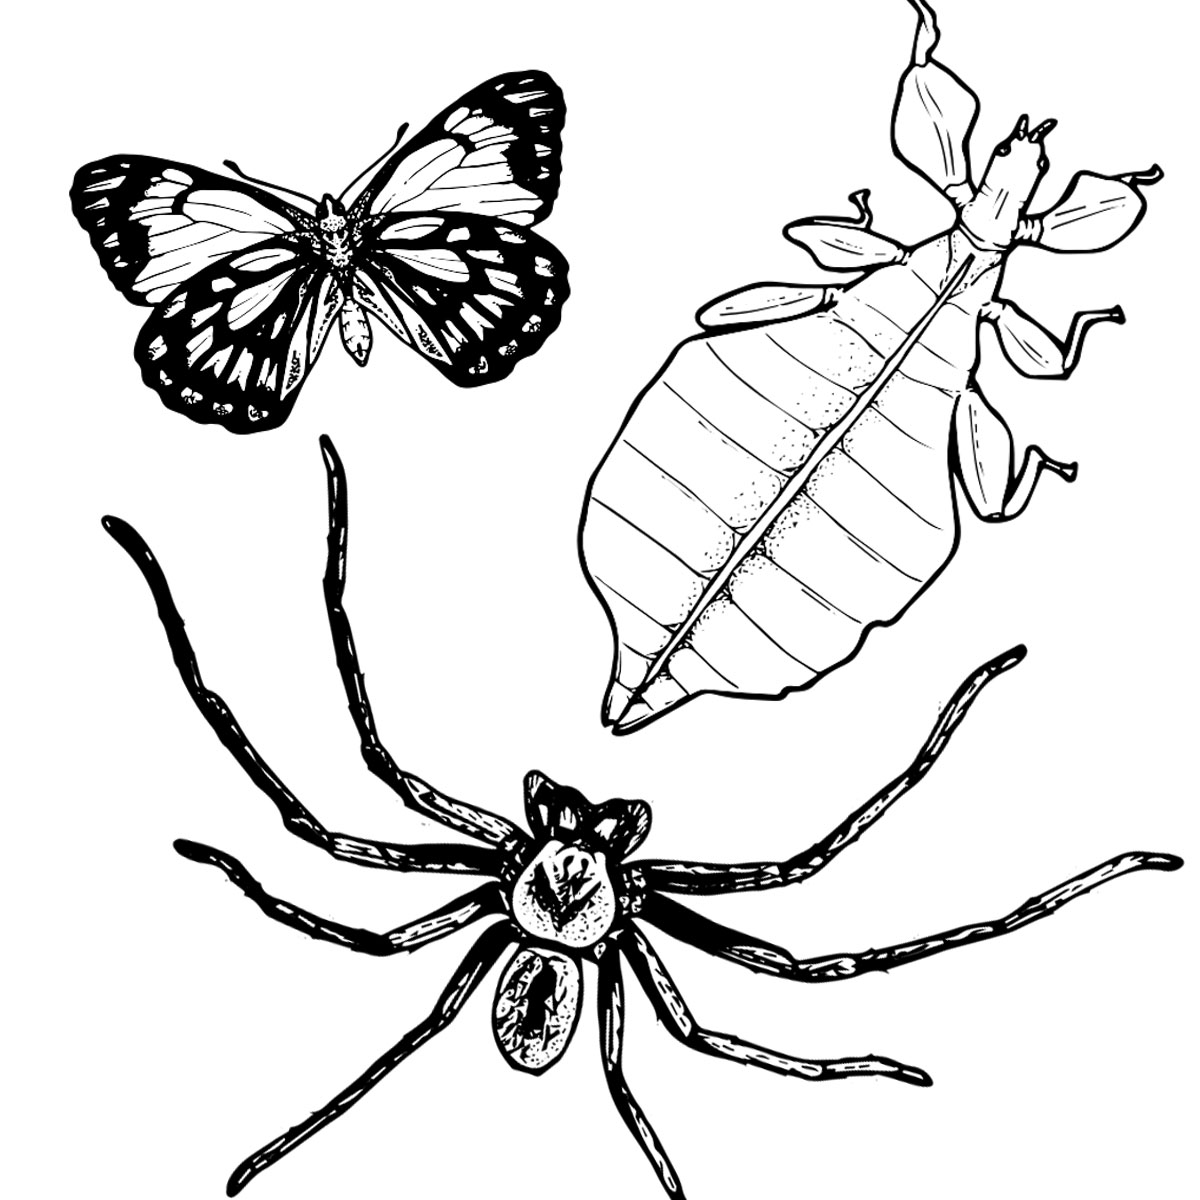 Caper White Butterfly, Leaf Insect, & Grey Huntsman Spider